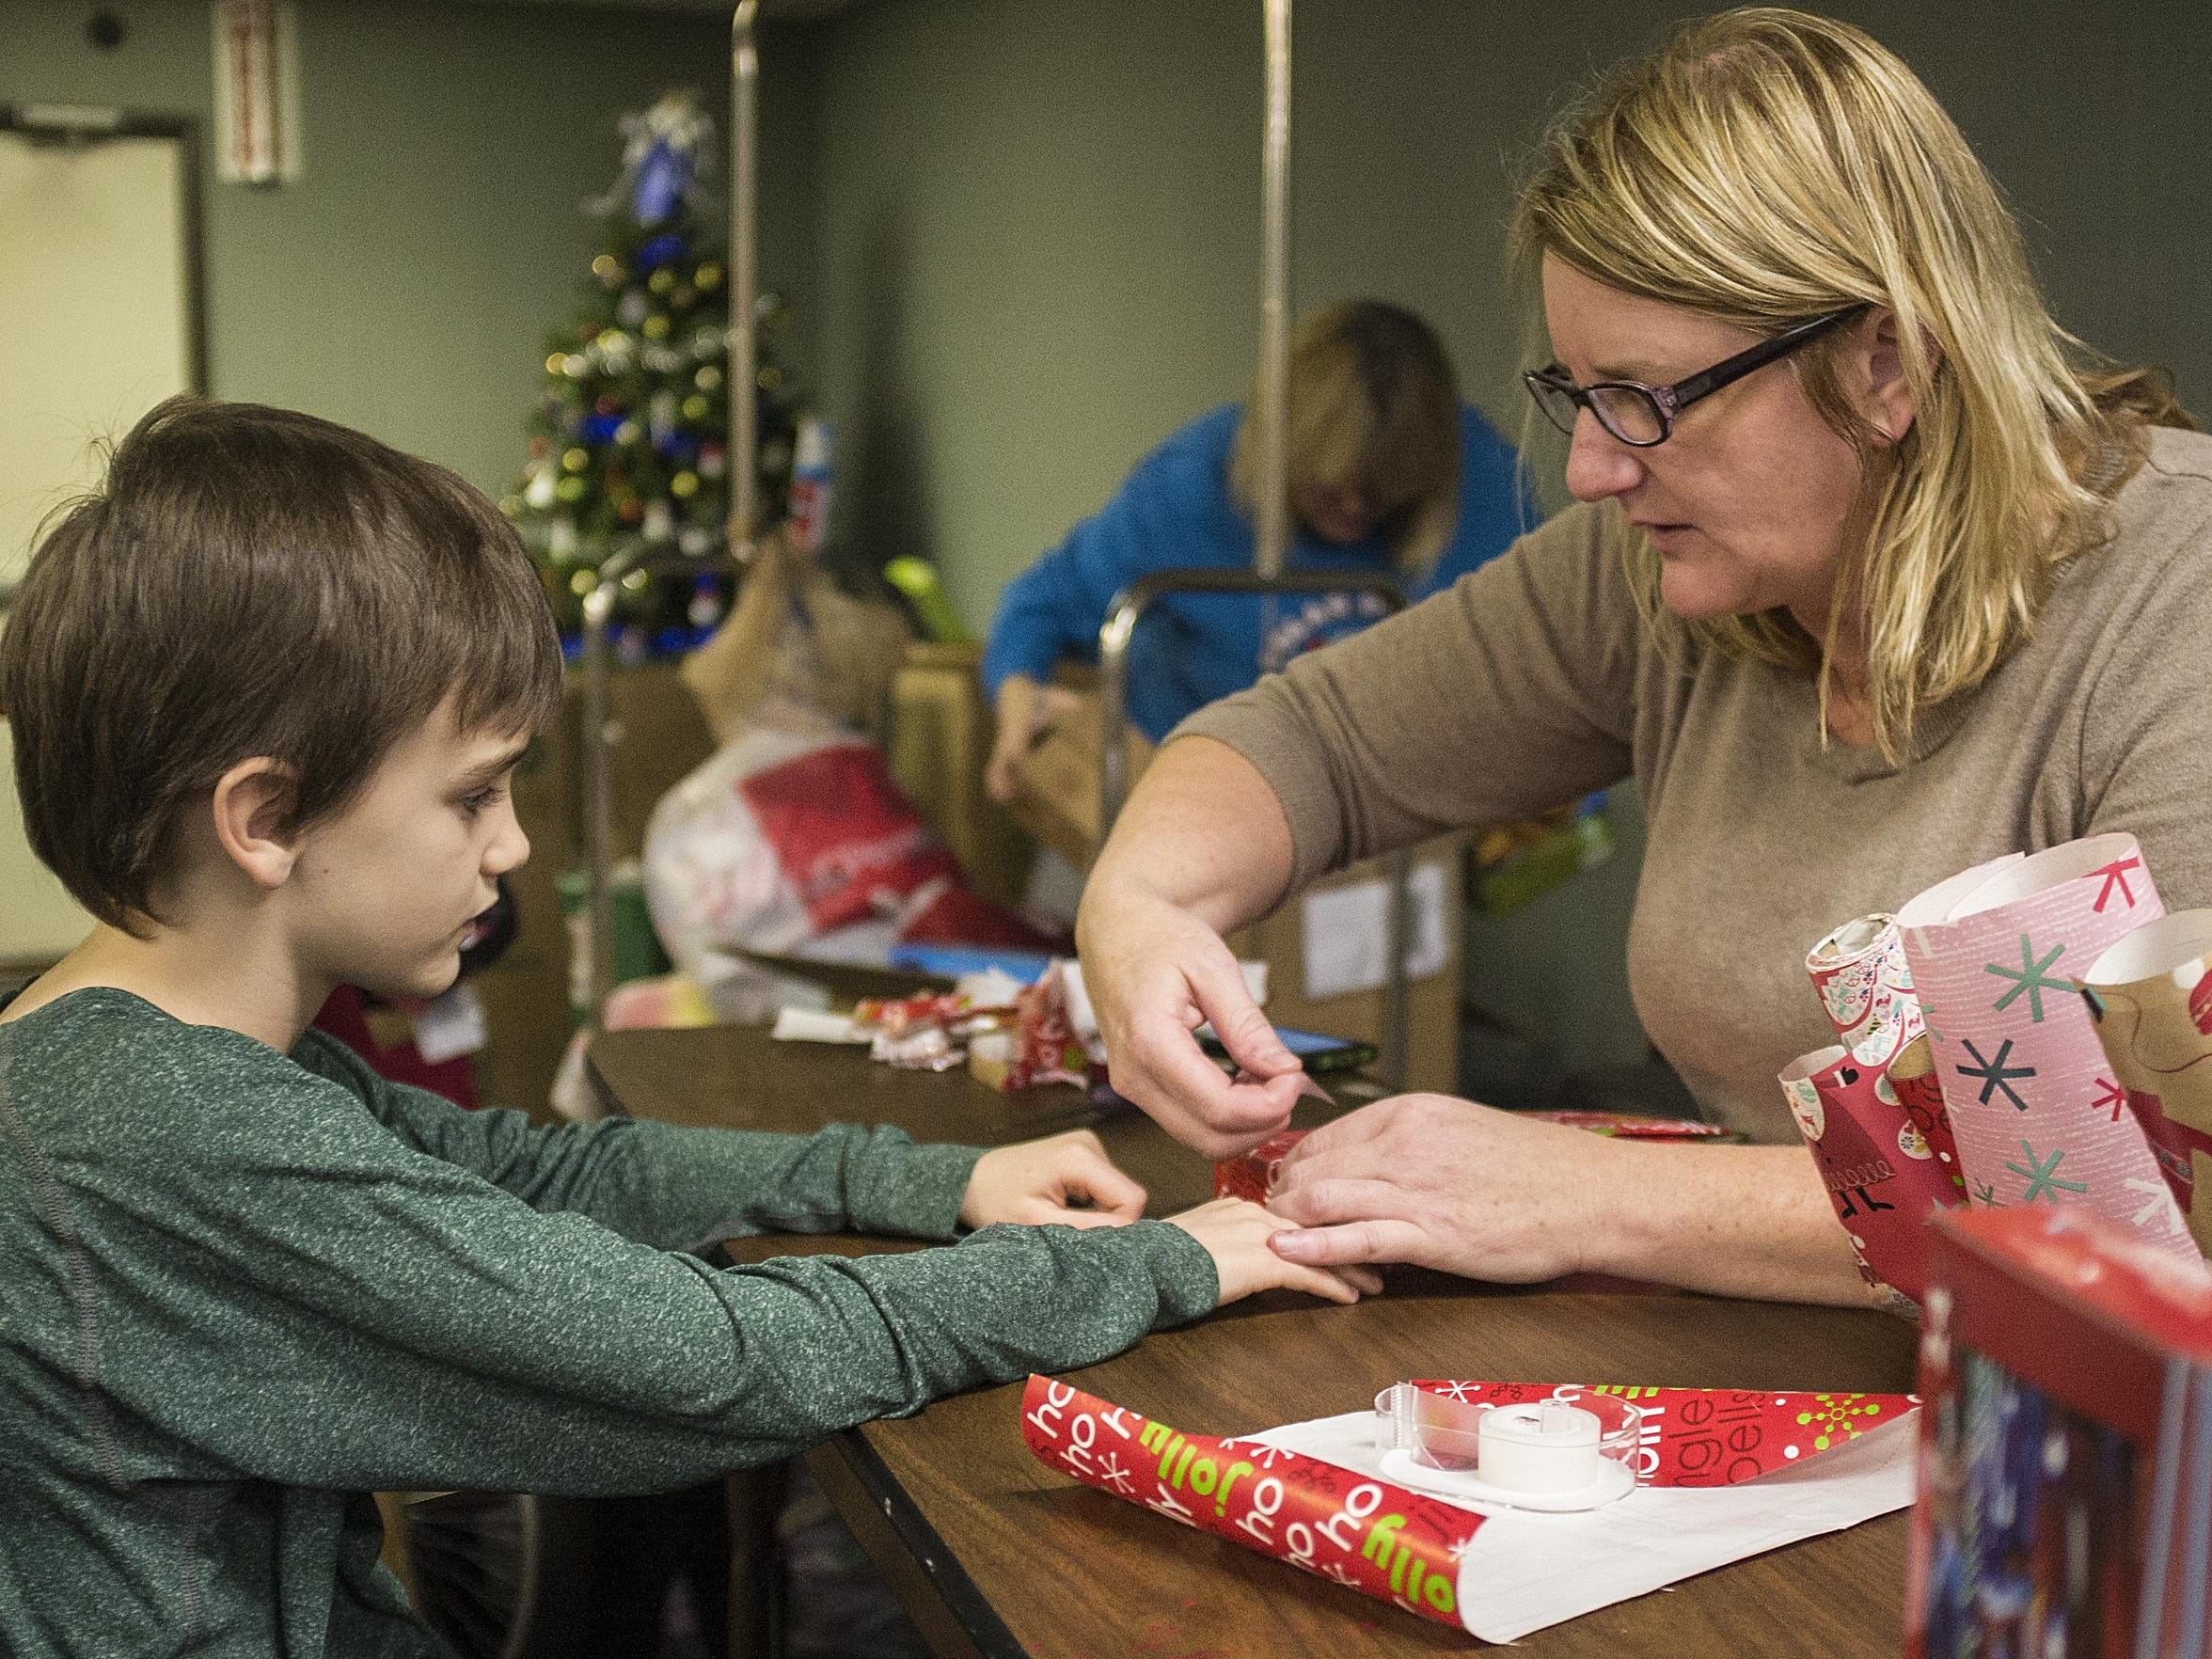 Gavin Dewey, 8, helps his mom Tina wrap presents for homeless children living in the Magnuson Hotel in Lansing Saturday, Dec. 5.